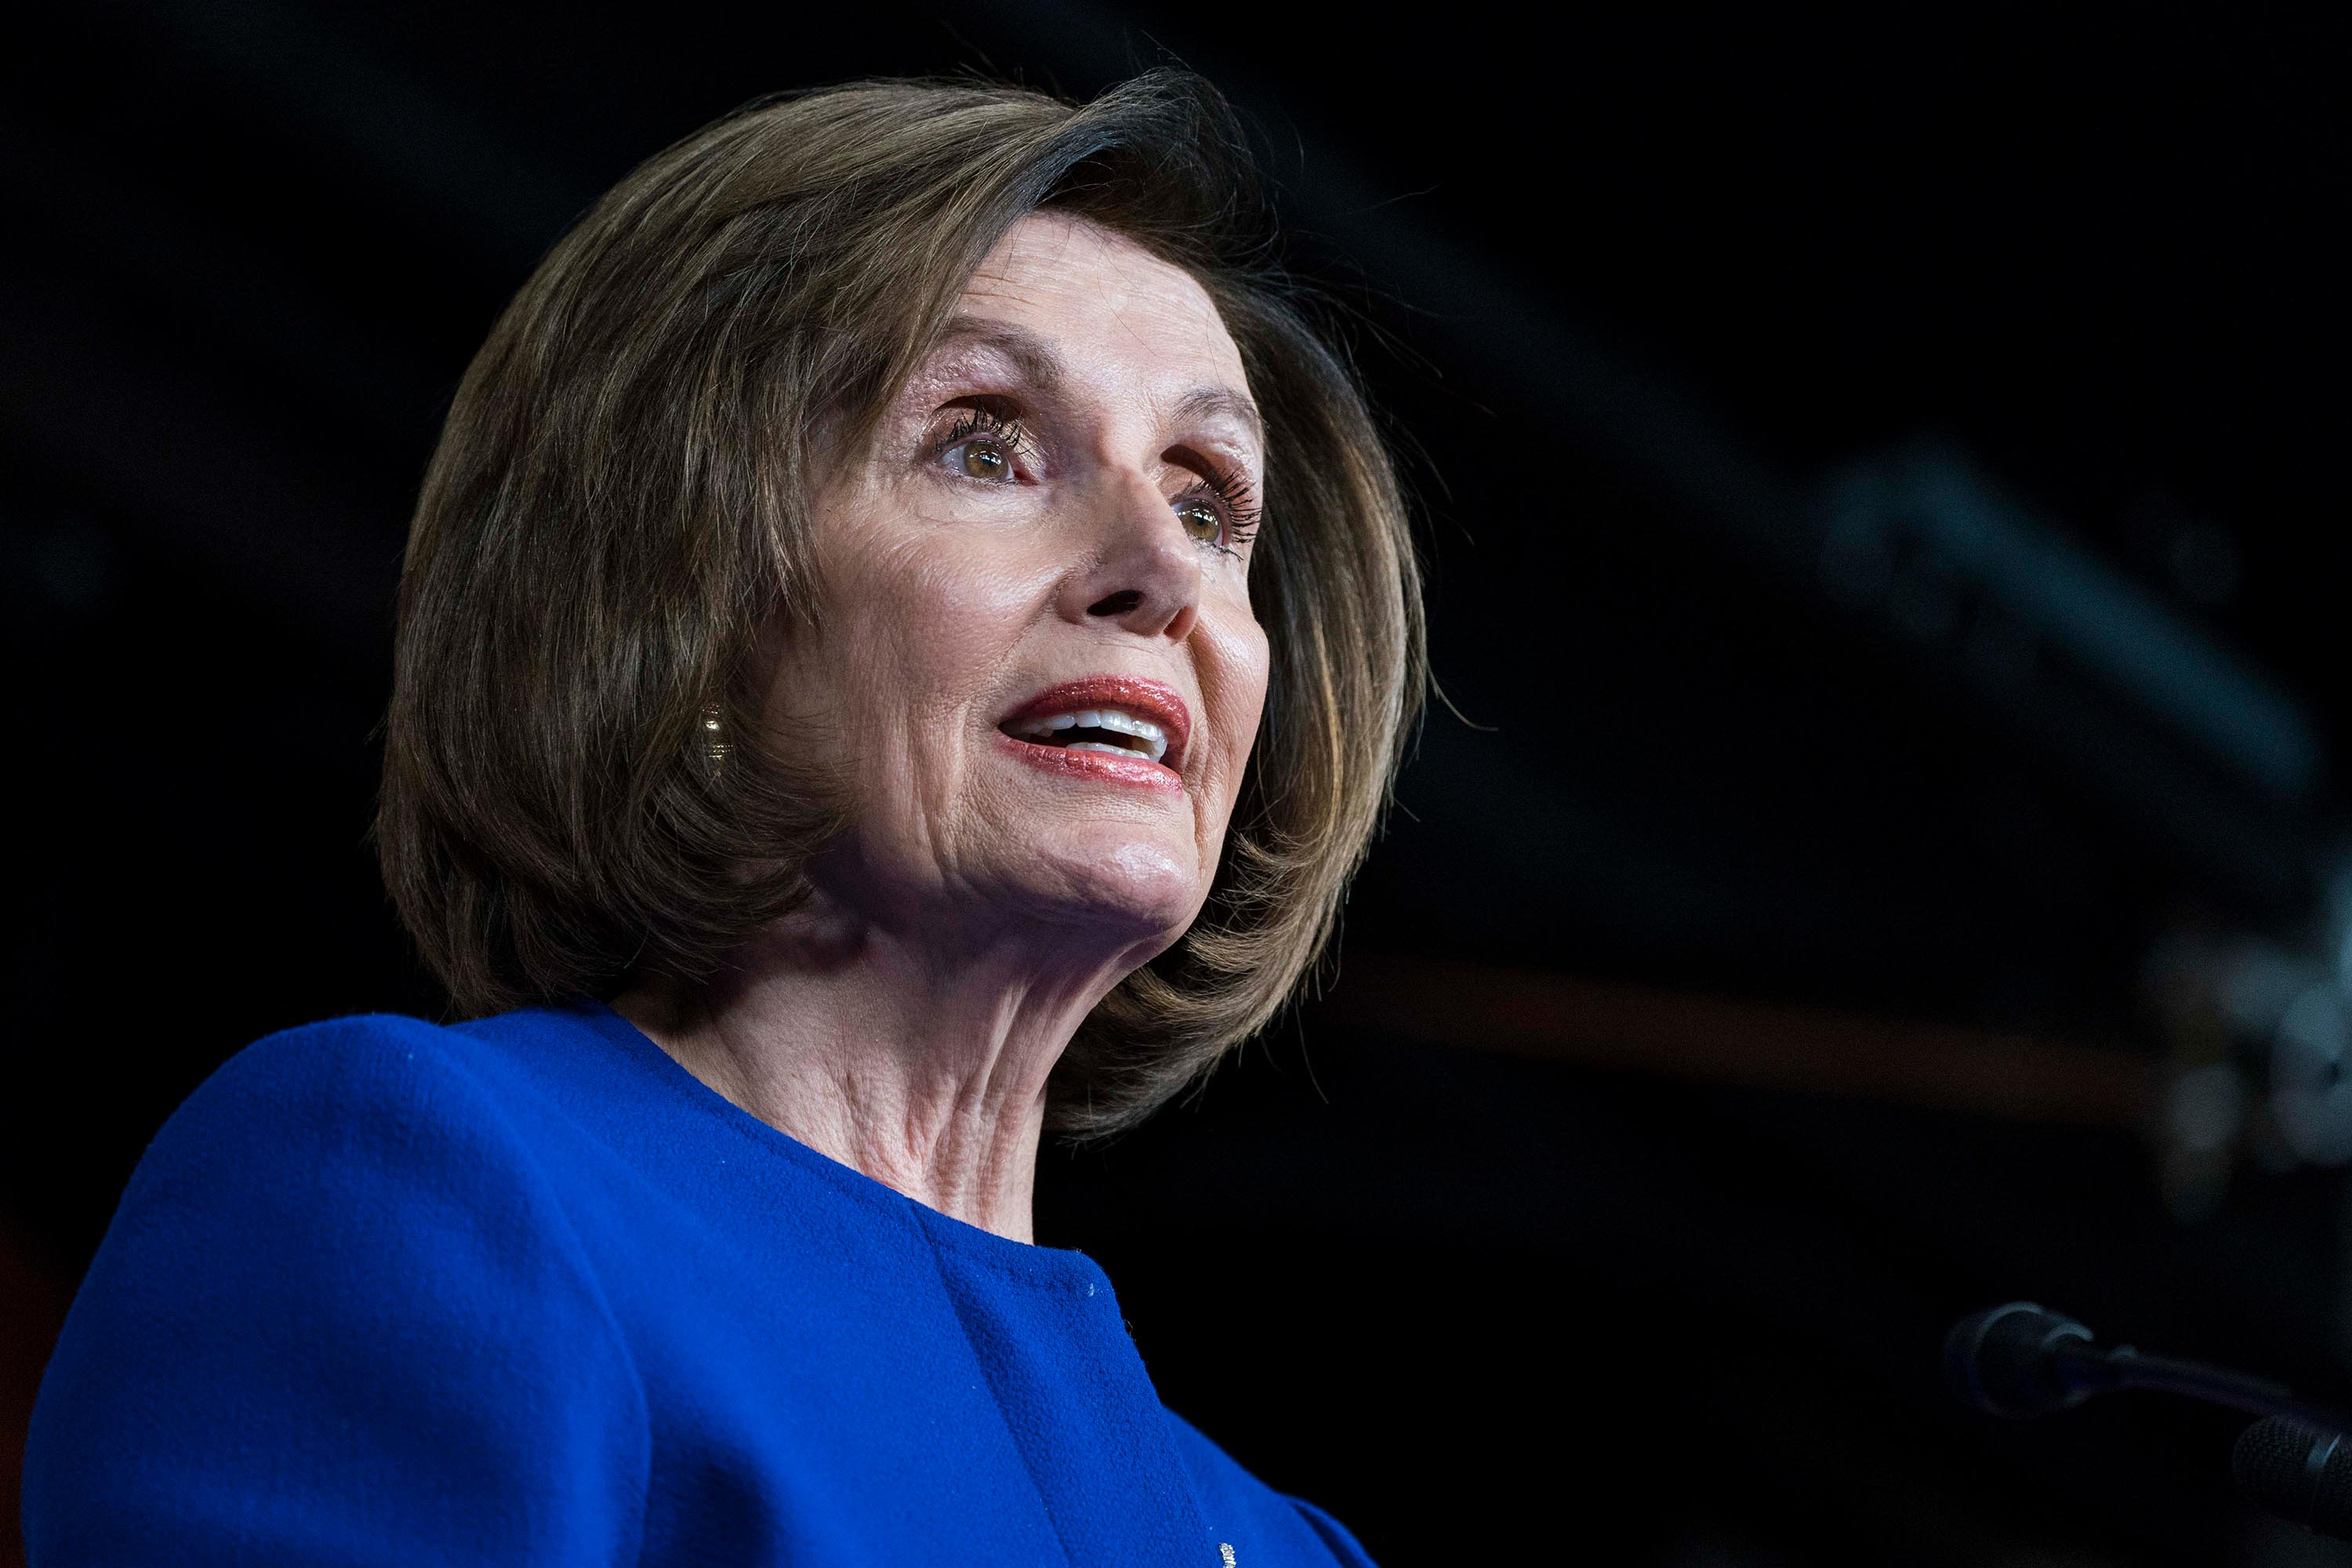 Pelosi calls Trump's coronavirus relief executive actions 'absurdly unconstitutional'